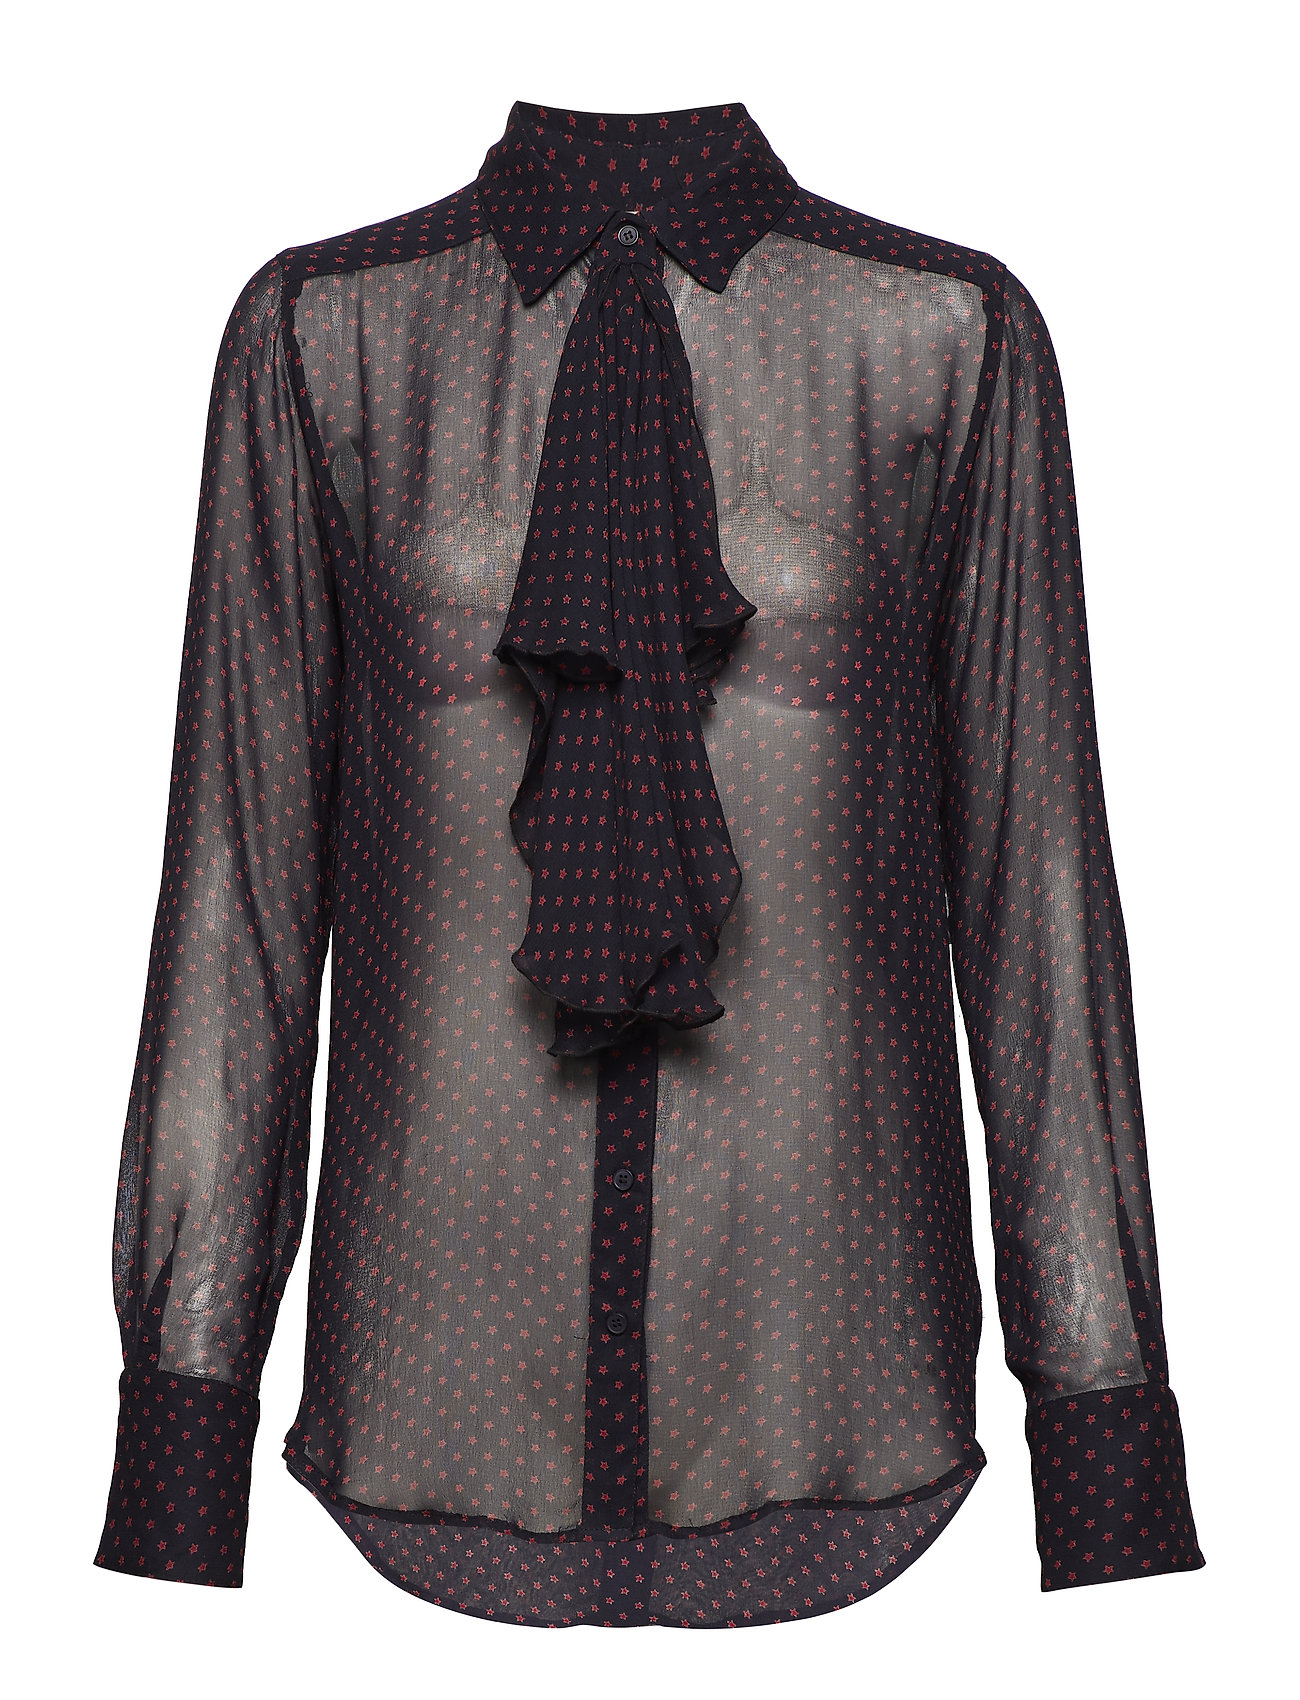 Hunkydory Clinton Star Shirt - ALMOST BLACK STAR